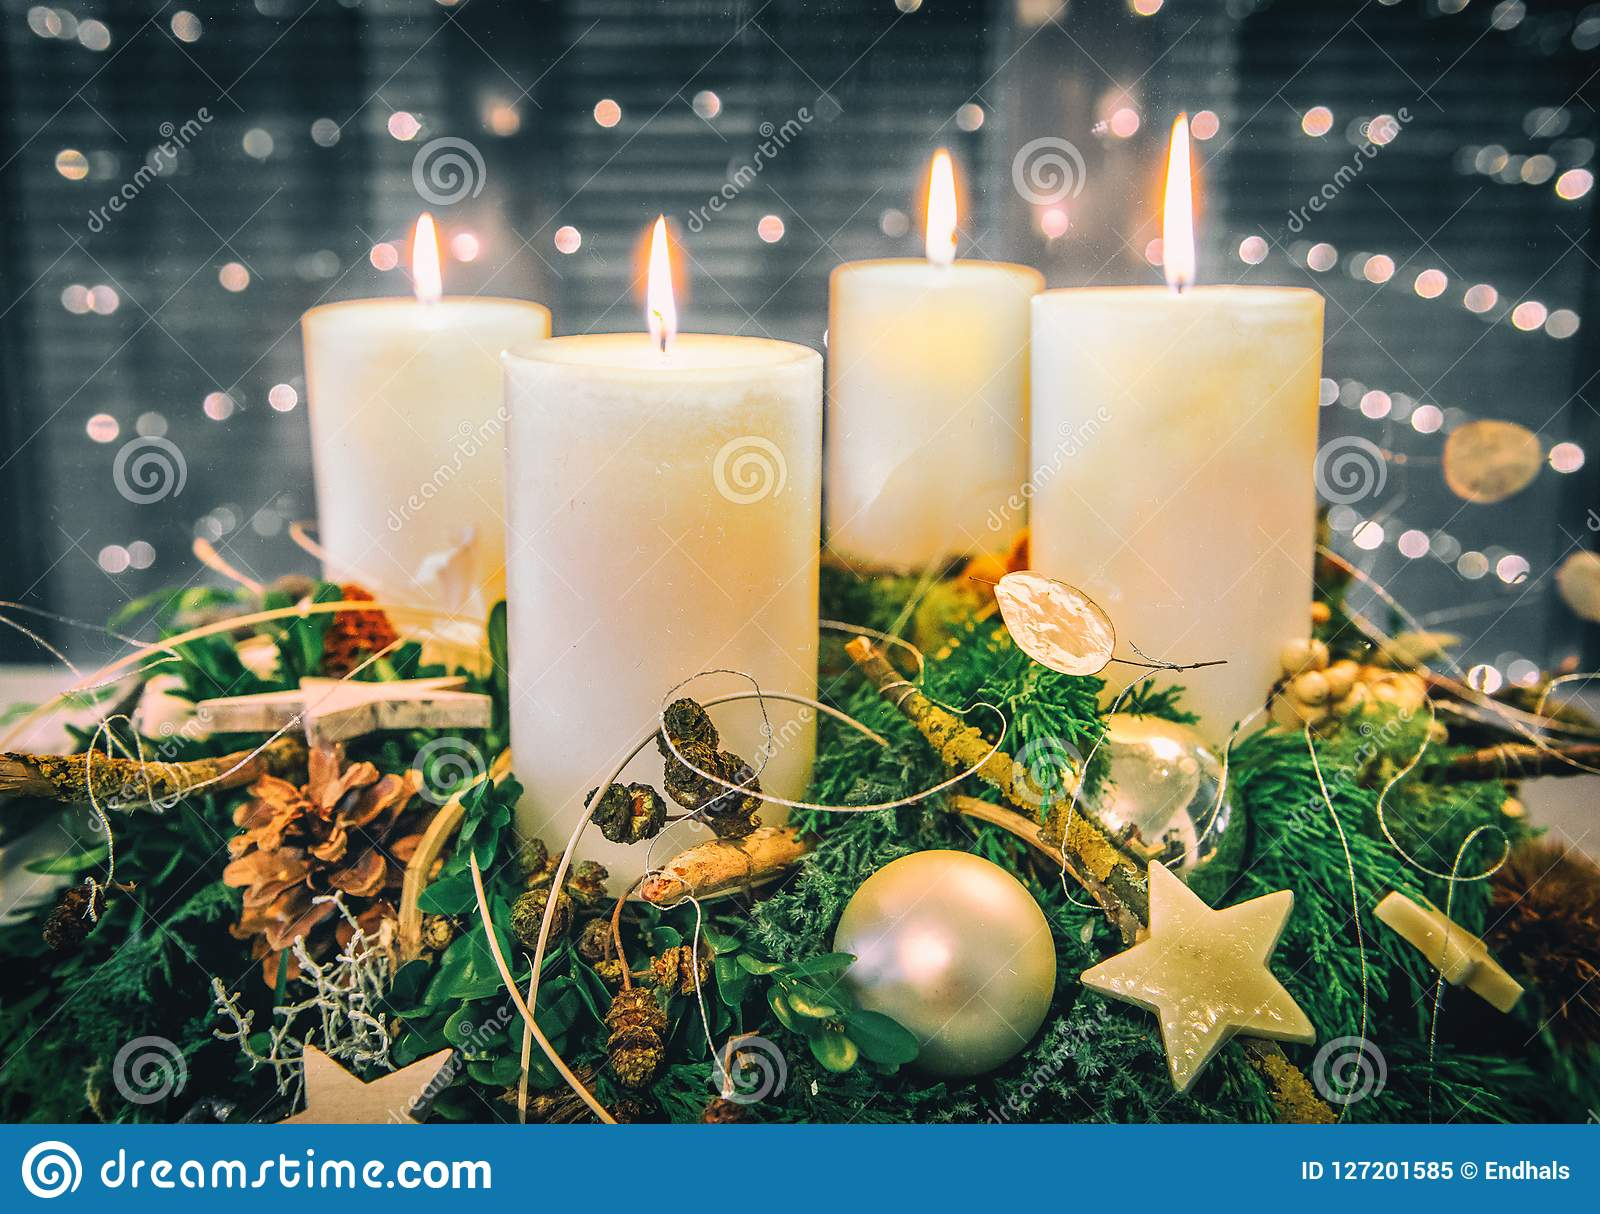 Advent Wreath festivo com velas ardentes